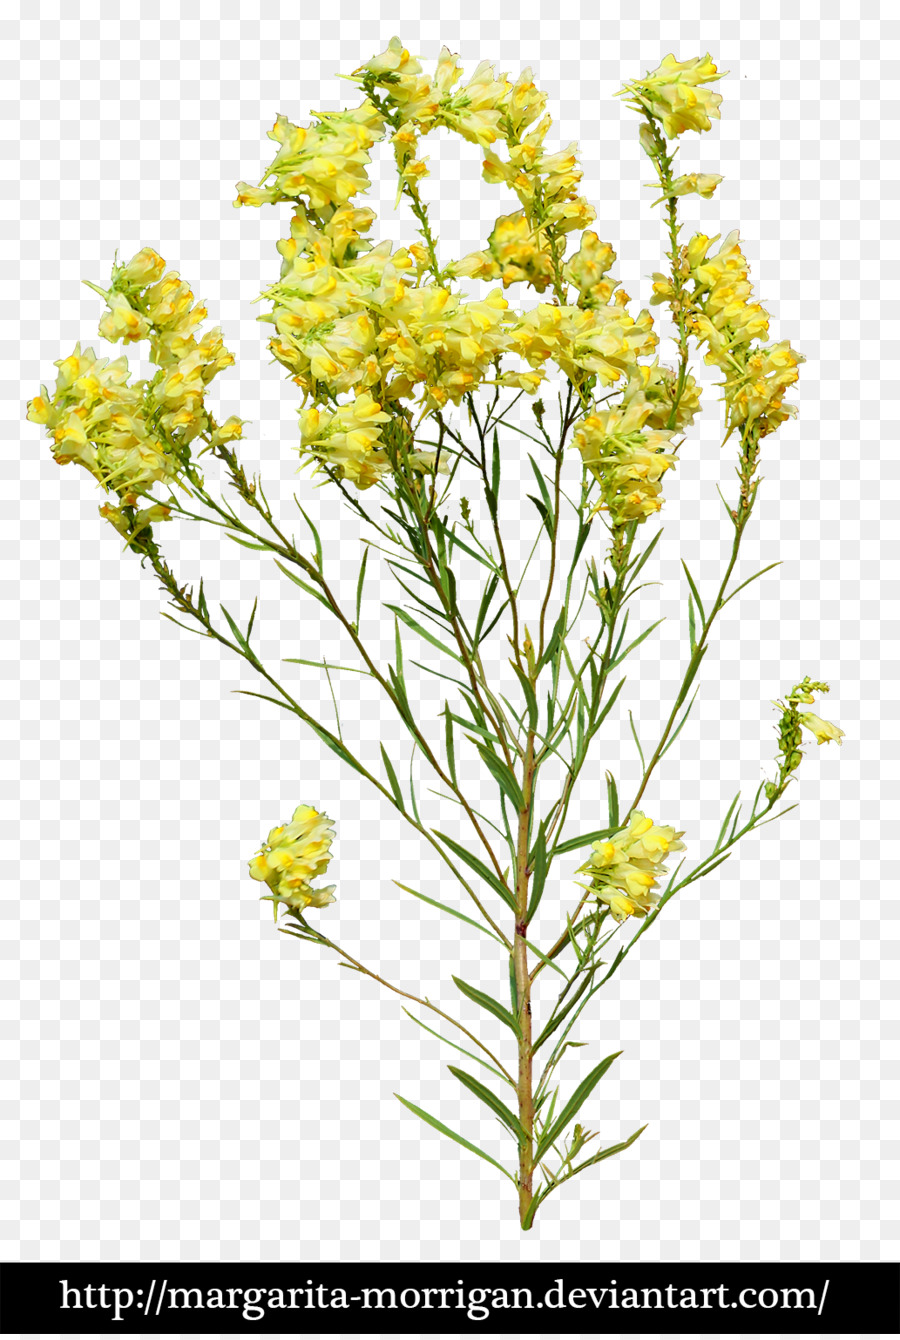 Flower plant yellow yellow flowers png download 9001334 free flower plant yellow yellow flowers mightylinksfo